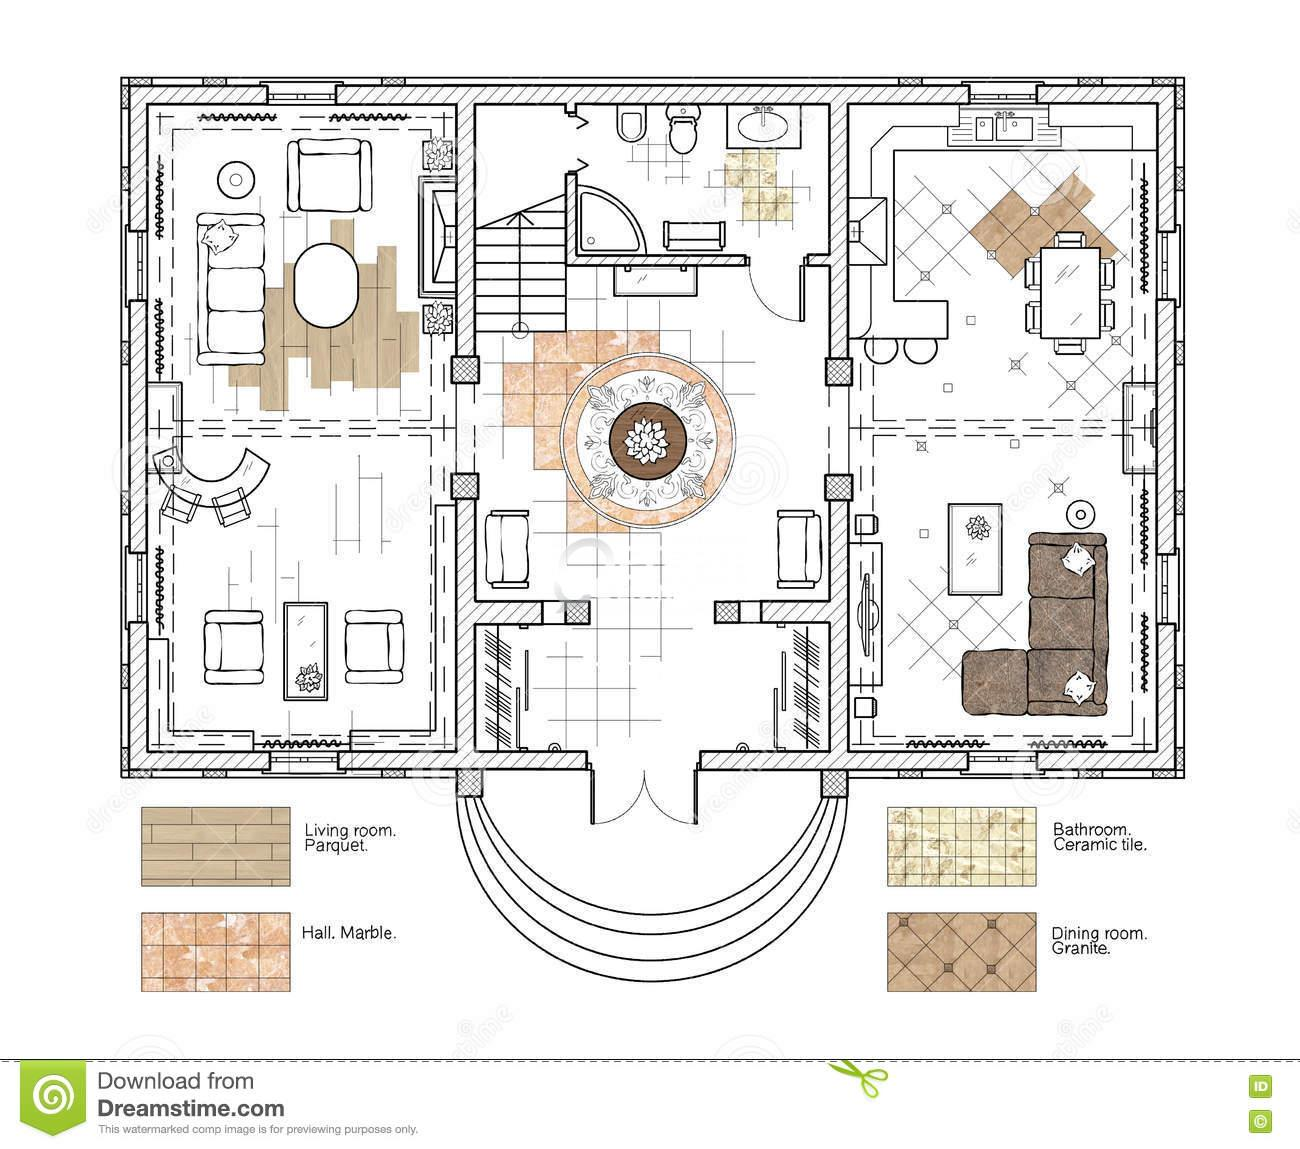 free lance autocad design and drafting in doha qatar  [ 1300 x 1149 Pixel ]